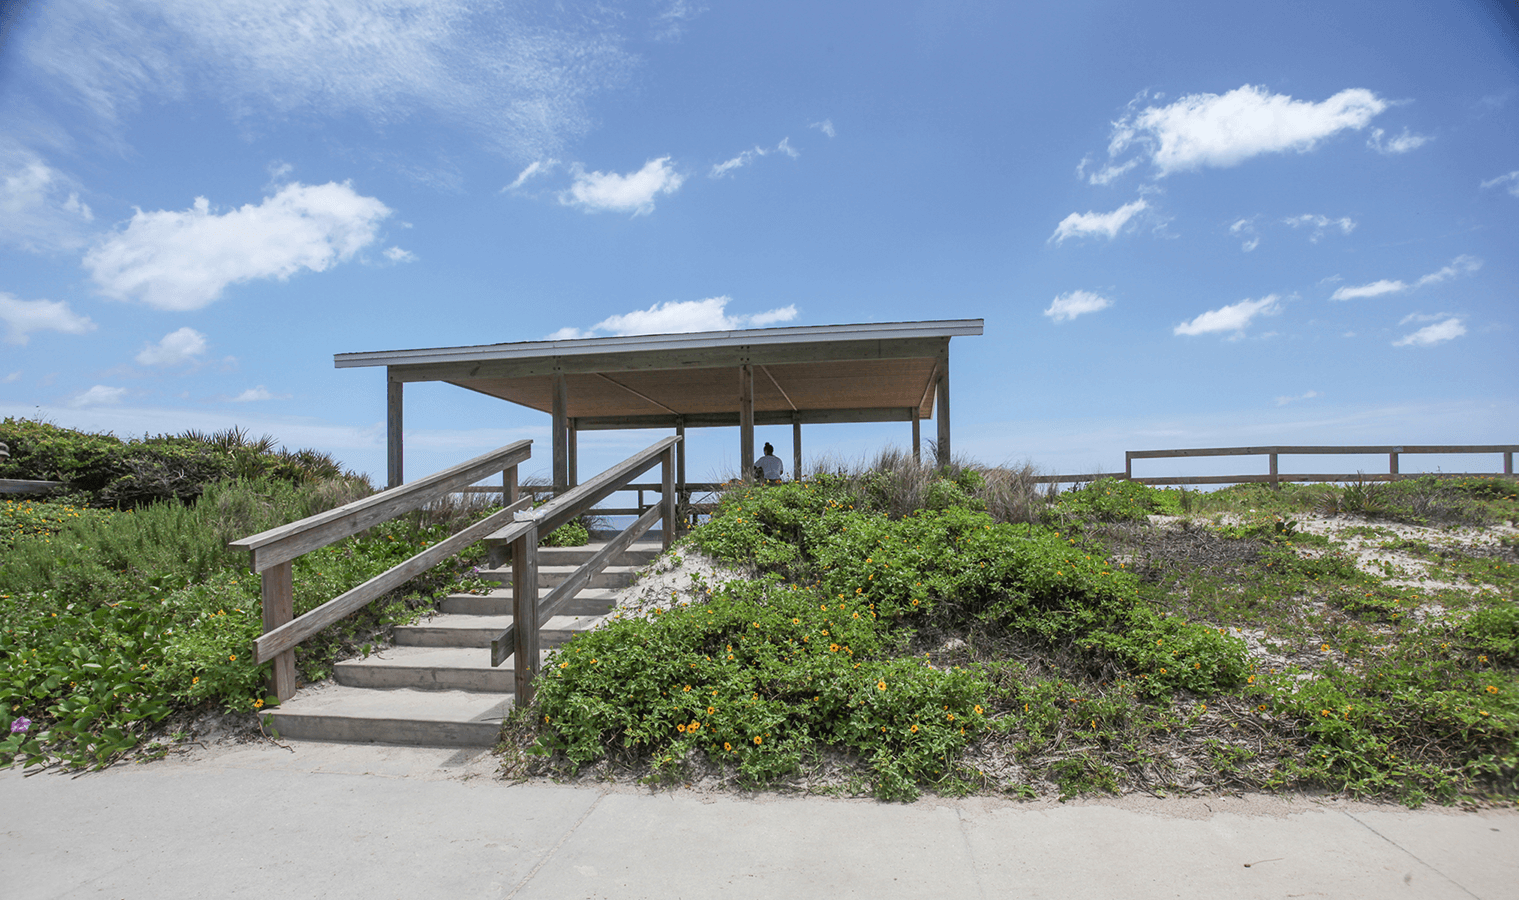 South Ponte Vedra Beach Pavilions stairs to the boardwalk